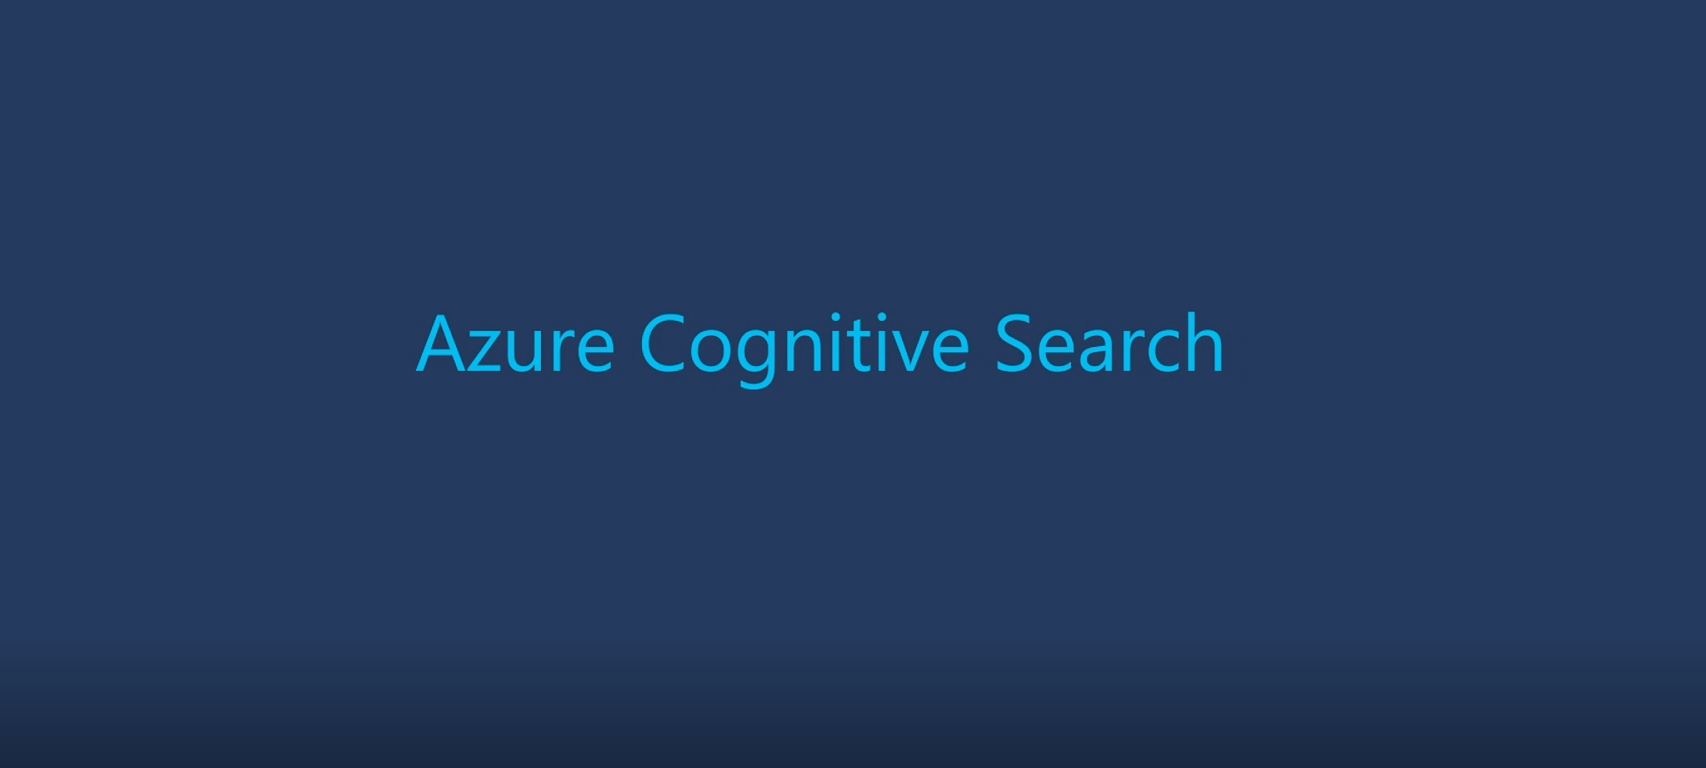 Azure Cognitive Search